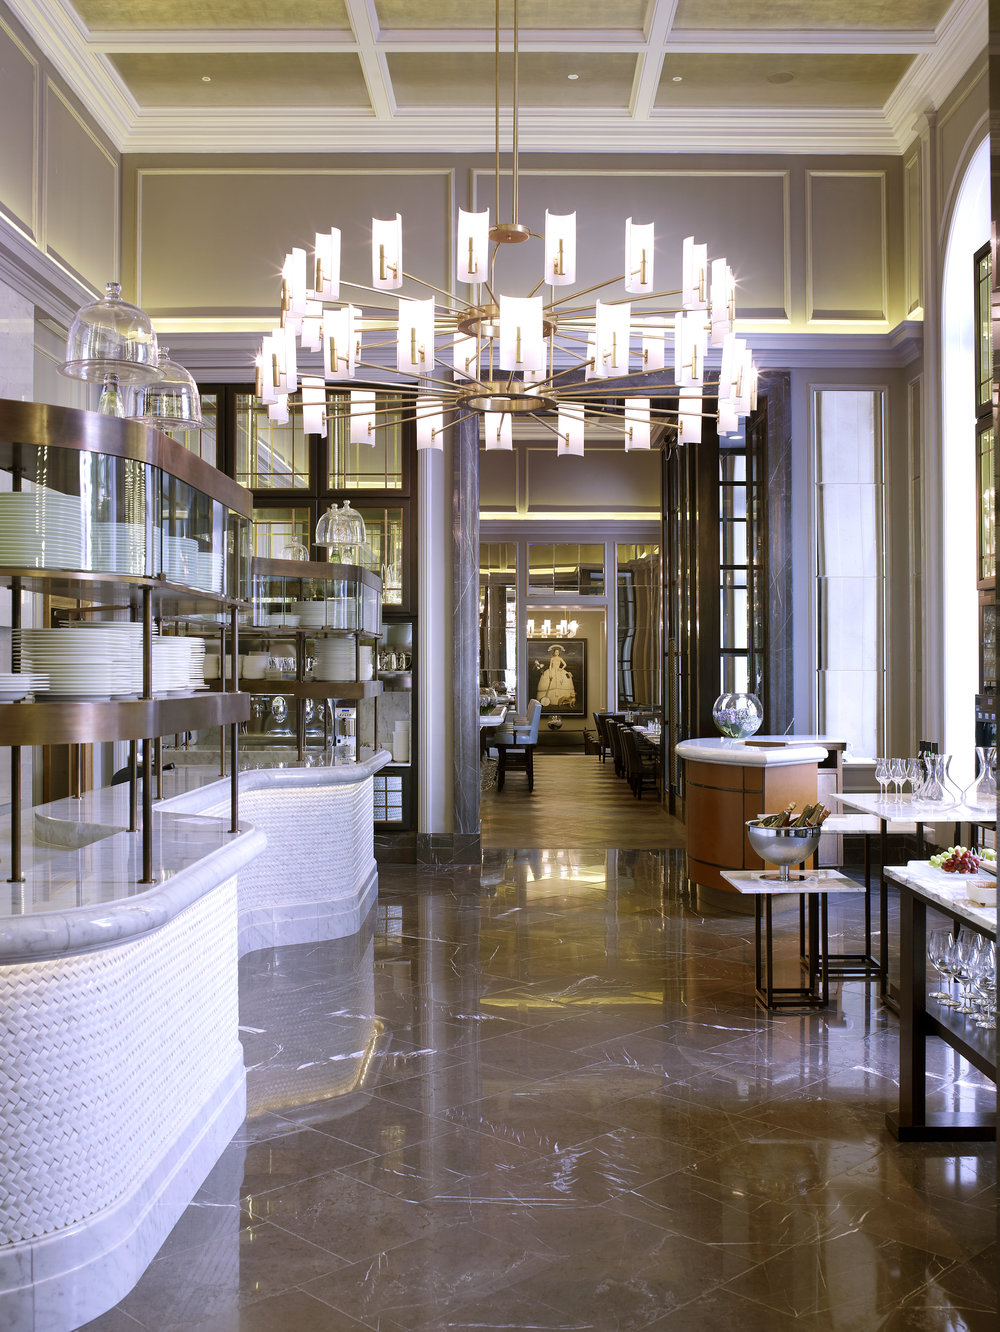 The Northall Food Theatre to PDR Corinthia Hotel London.jpg